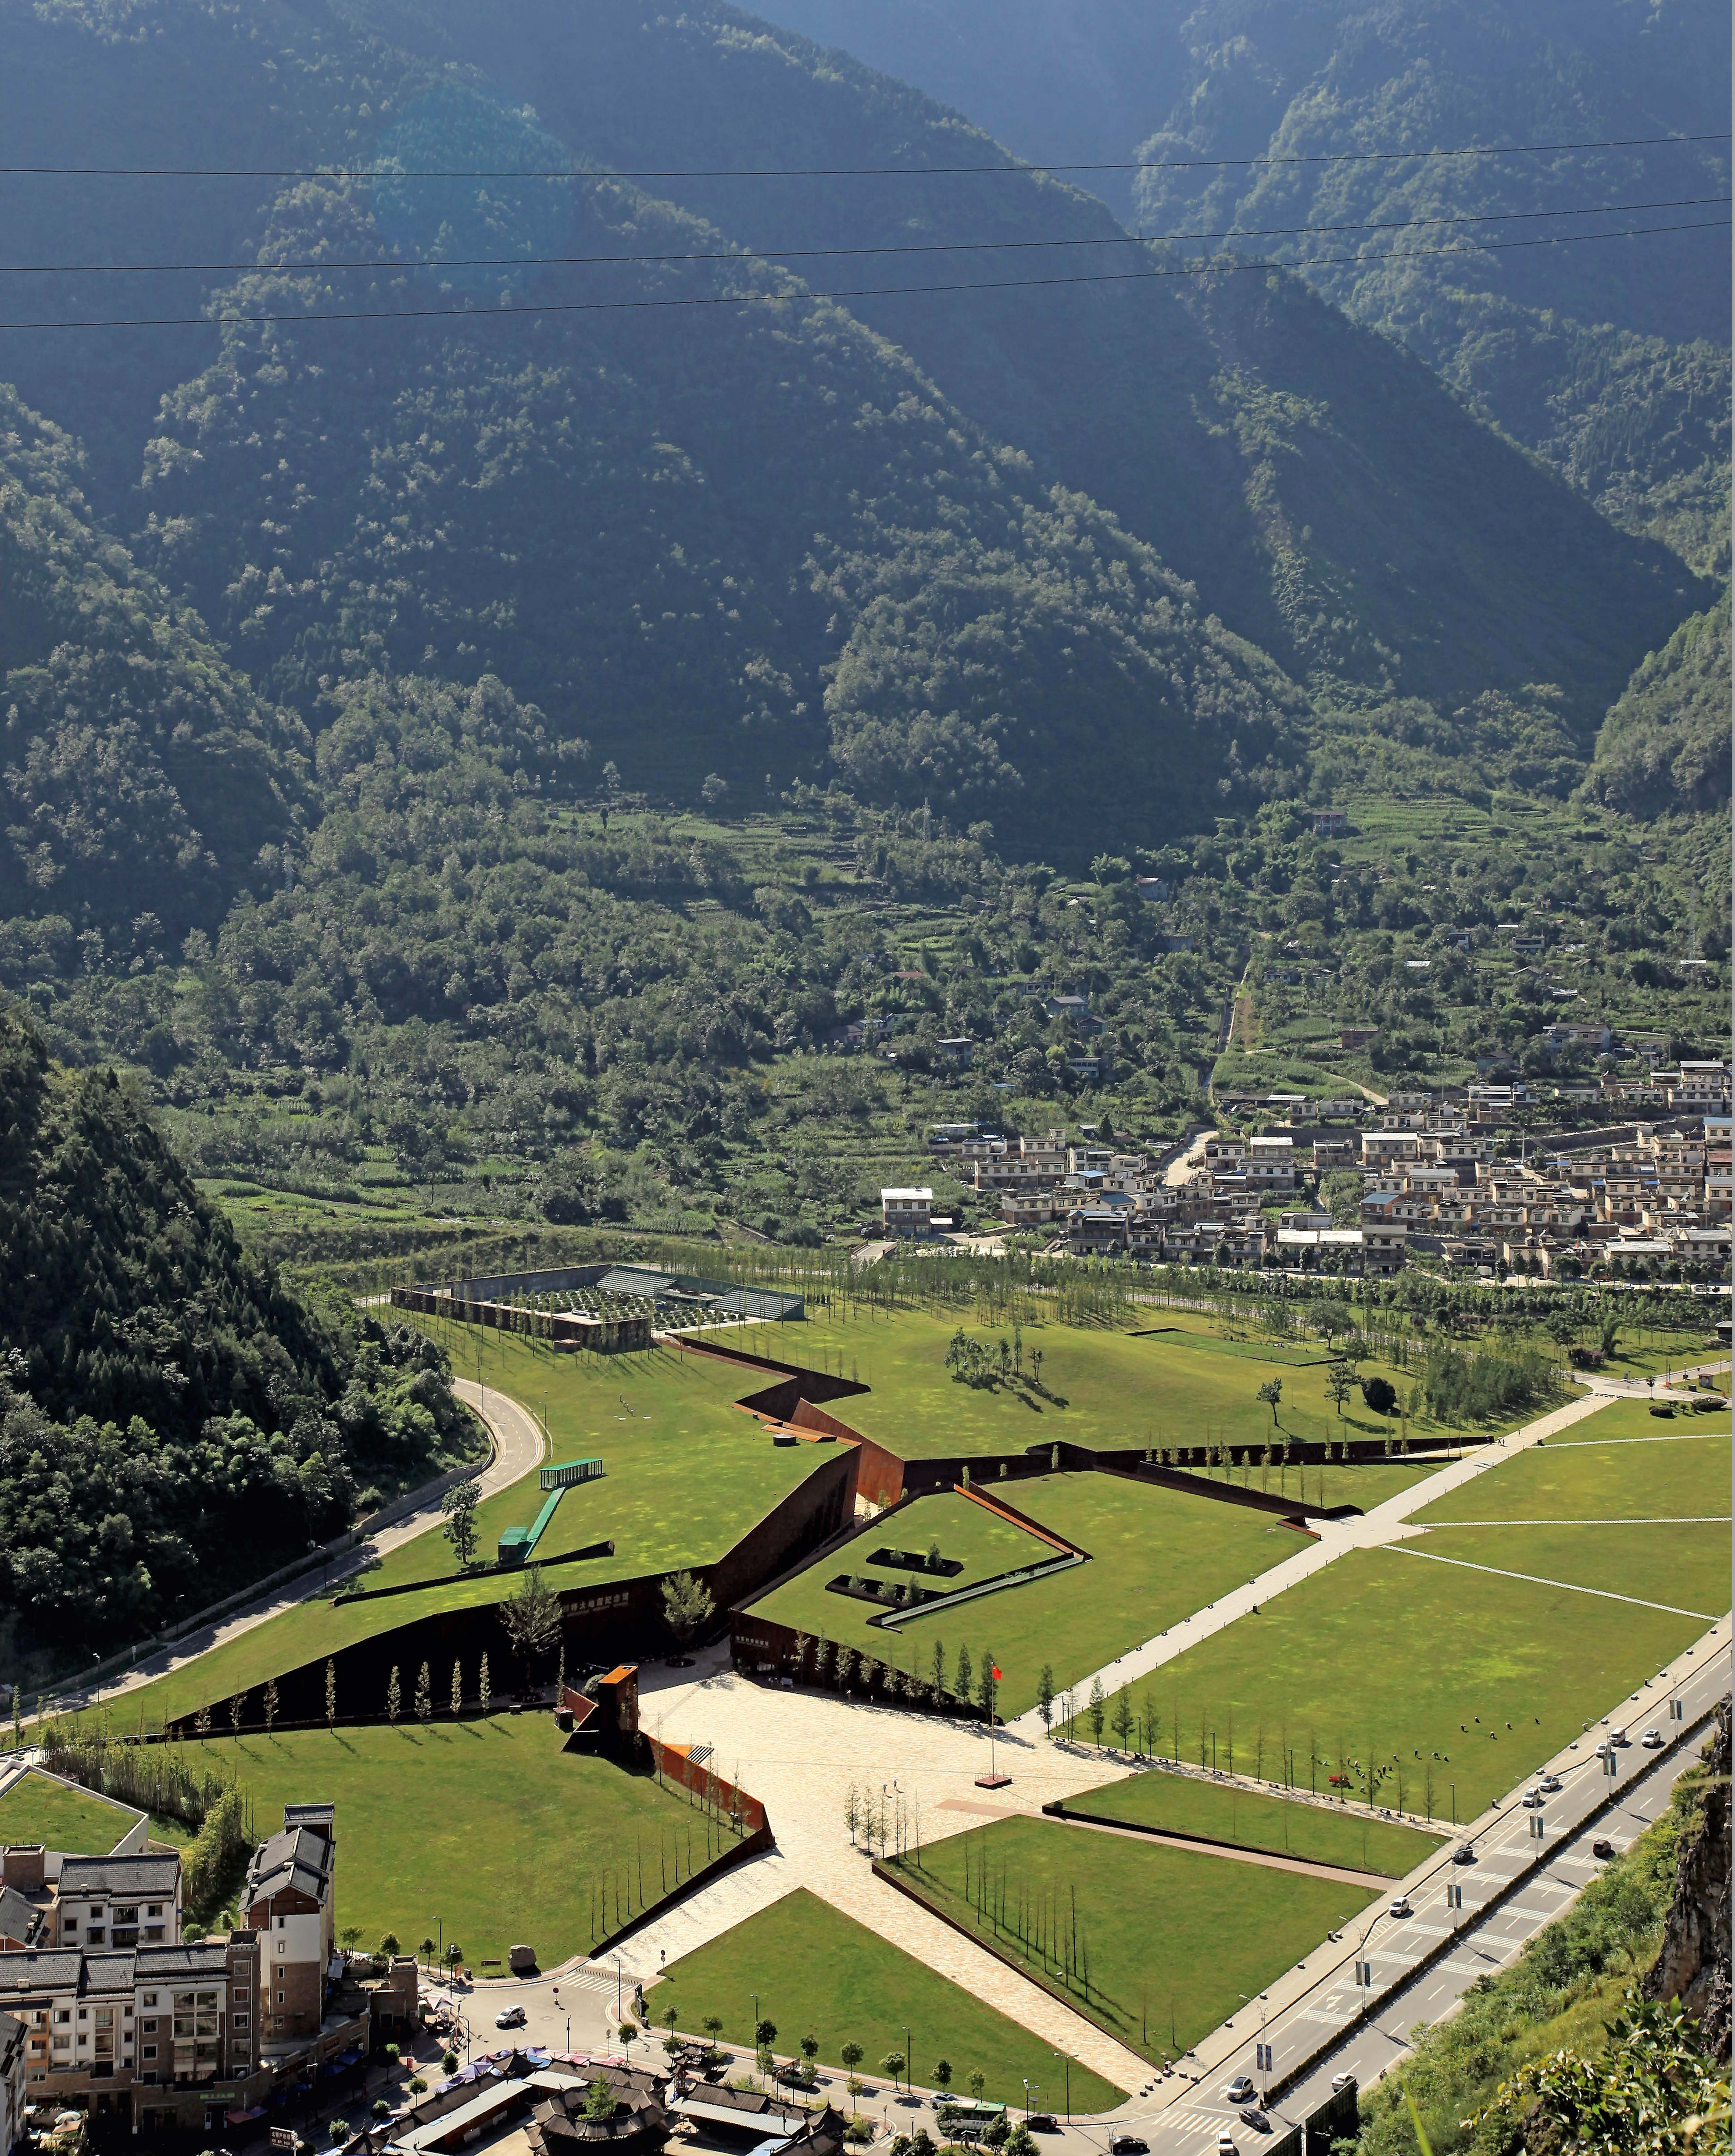 Museum of the Wenchuan Earthquake